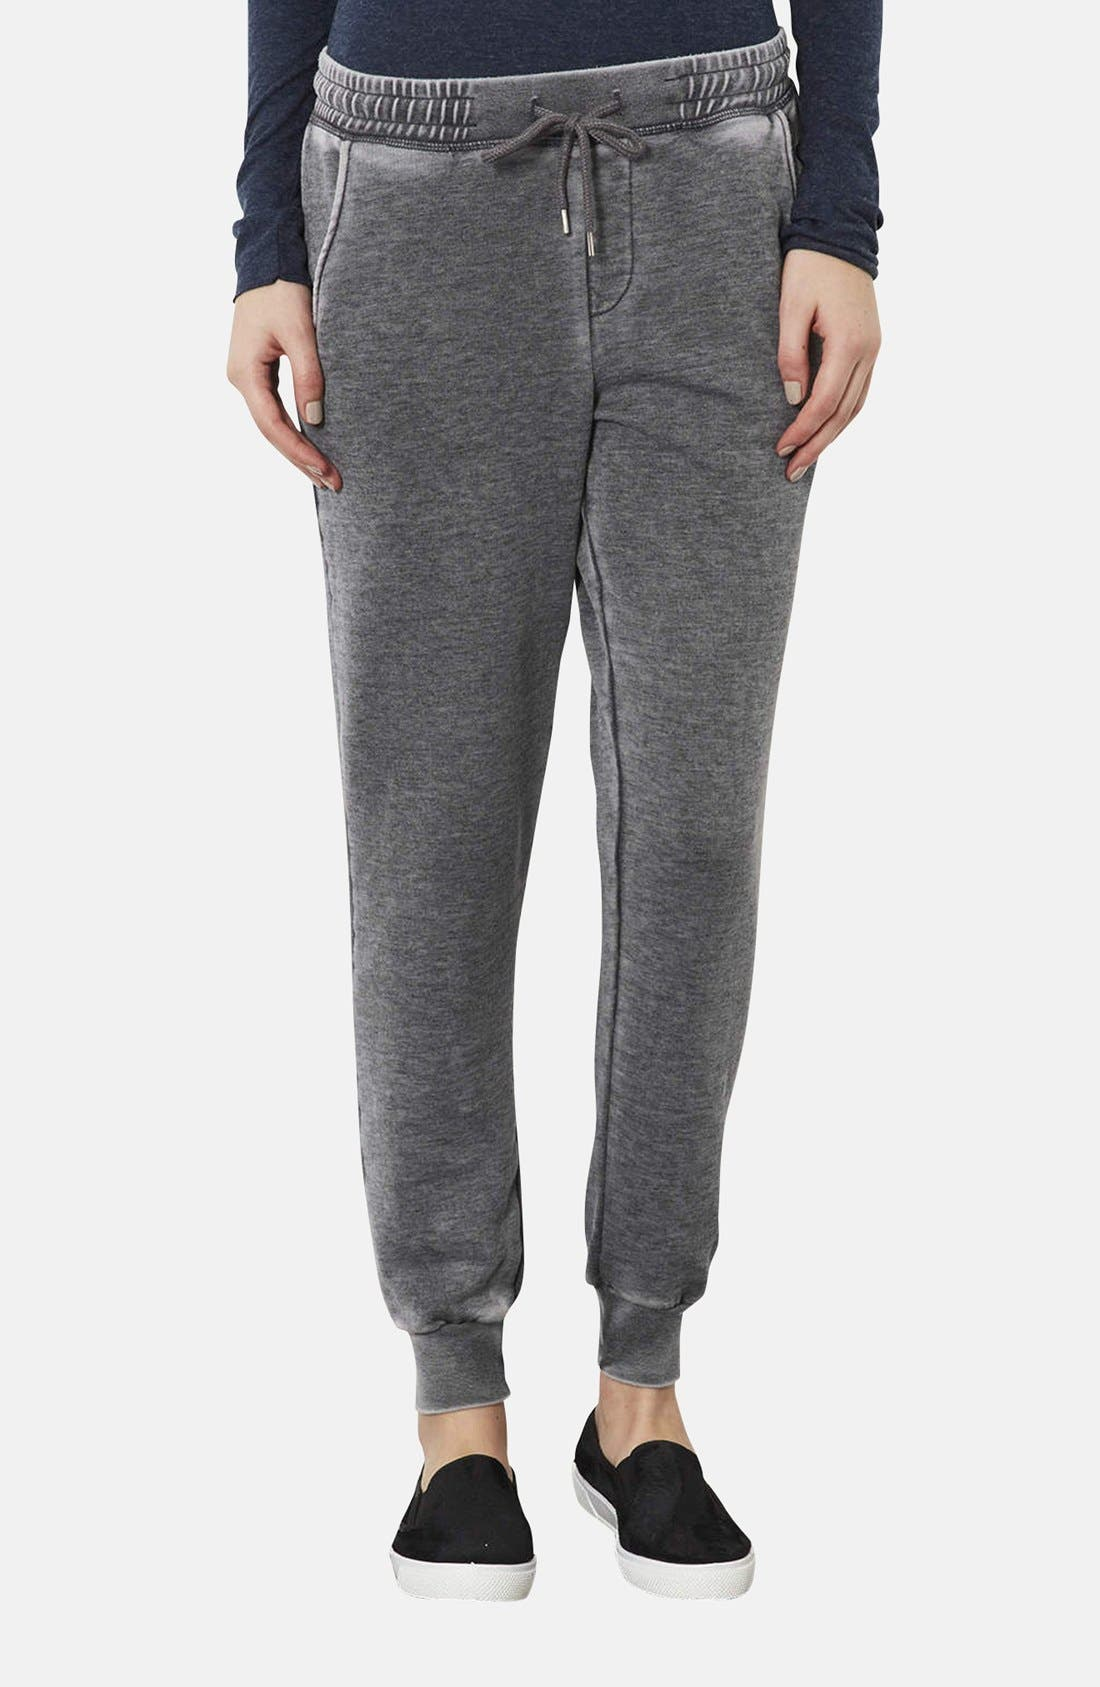 Alternate Image 1 Selected - Topshop Faded Cotton Blend Track Pants